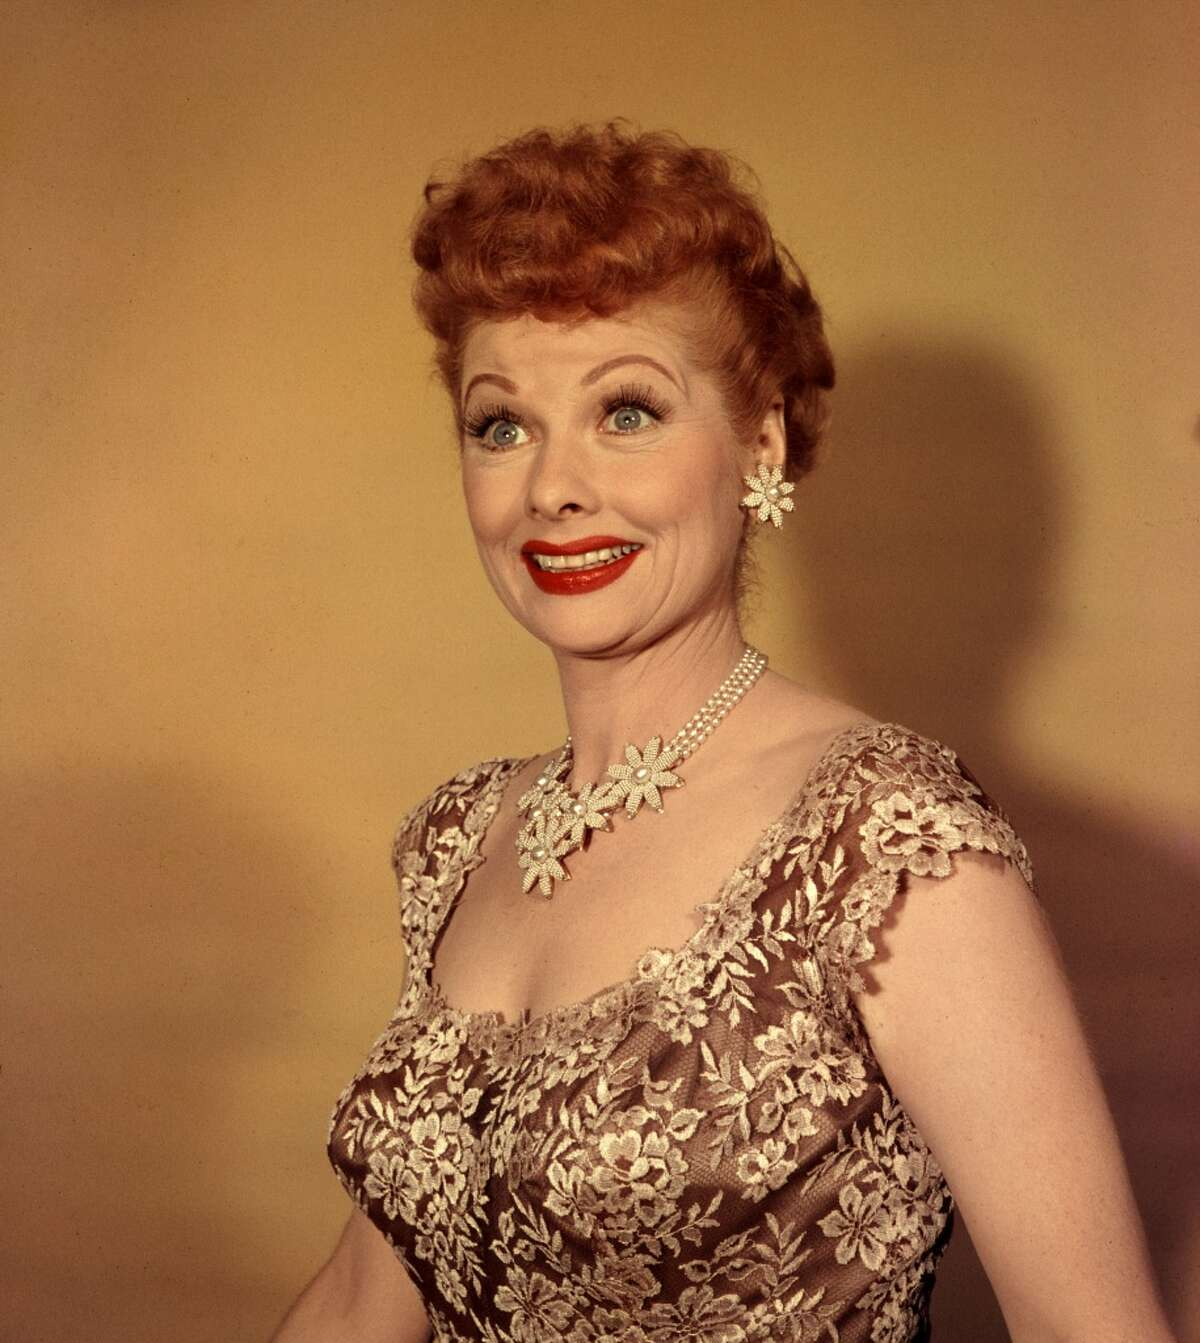 Early starts Lucille Desiree Ball was born to a working-class family in Jamestown, N.Y. in 1911. Desiderio Alberto Arnaz y de Acha III started life in a rich family in Cuba in 1917, fleeing to this country in 1933 after the family lost everything in a revolution.